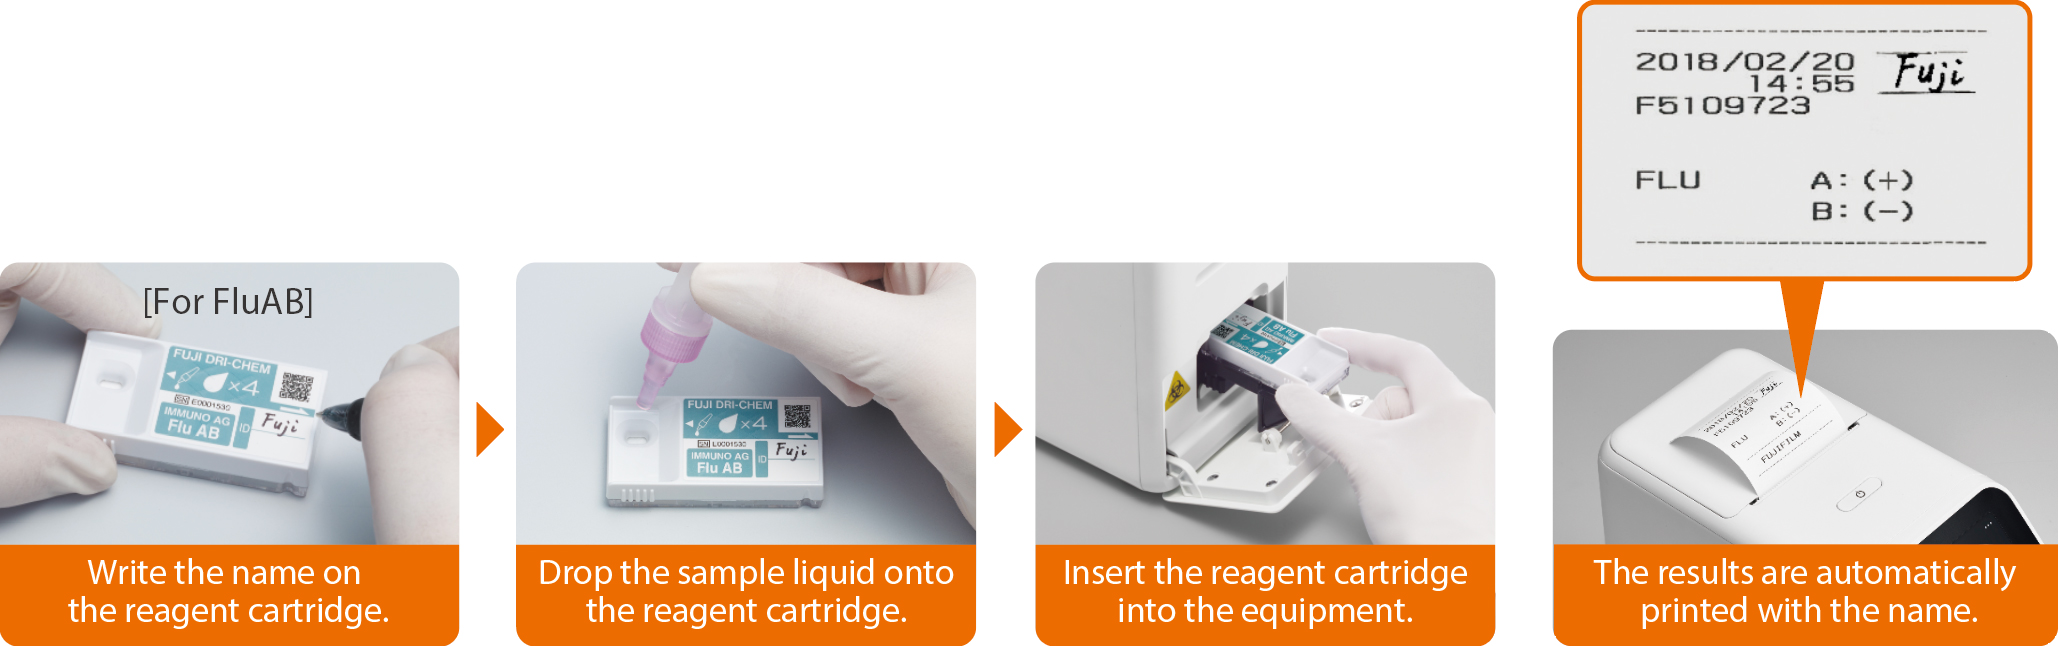 [image] Gloved hands writing name and dropping sample liquid onto AG Flu Test cartridge, then inserting into equipment and receiving automatically printed test results paper